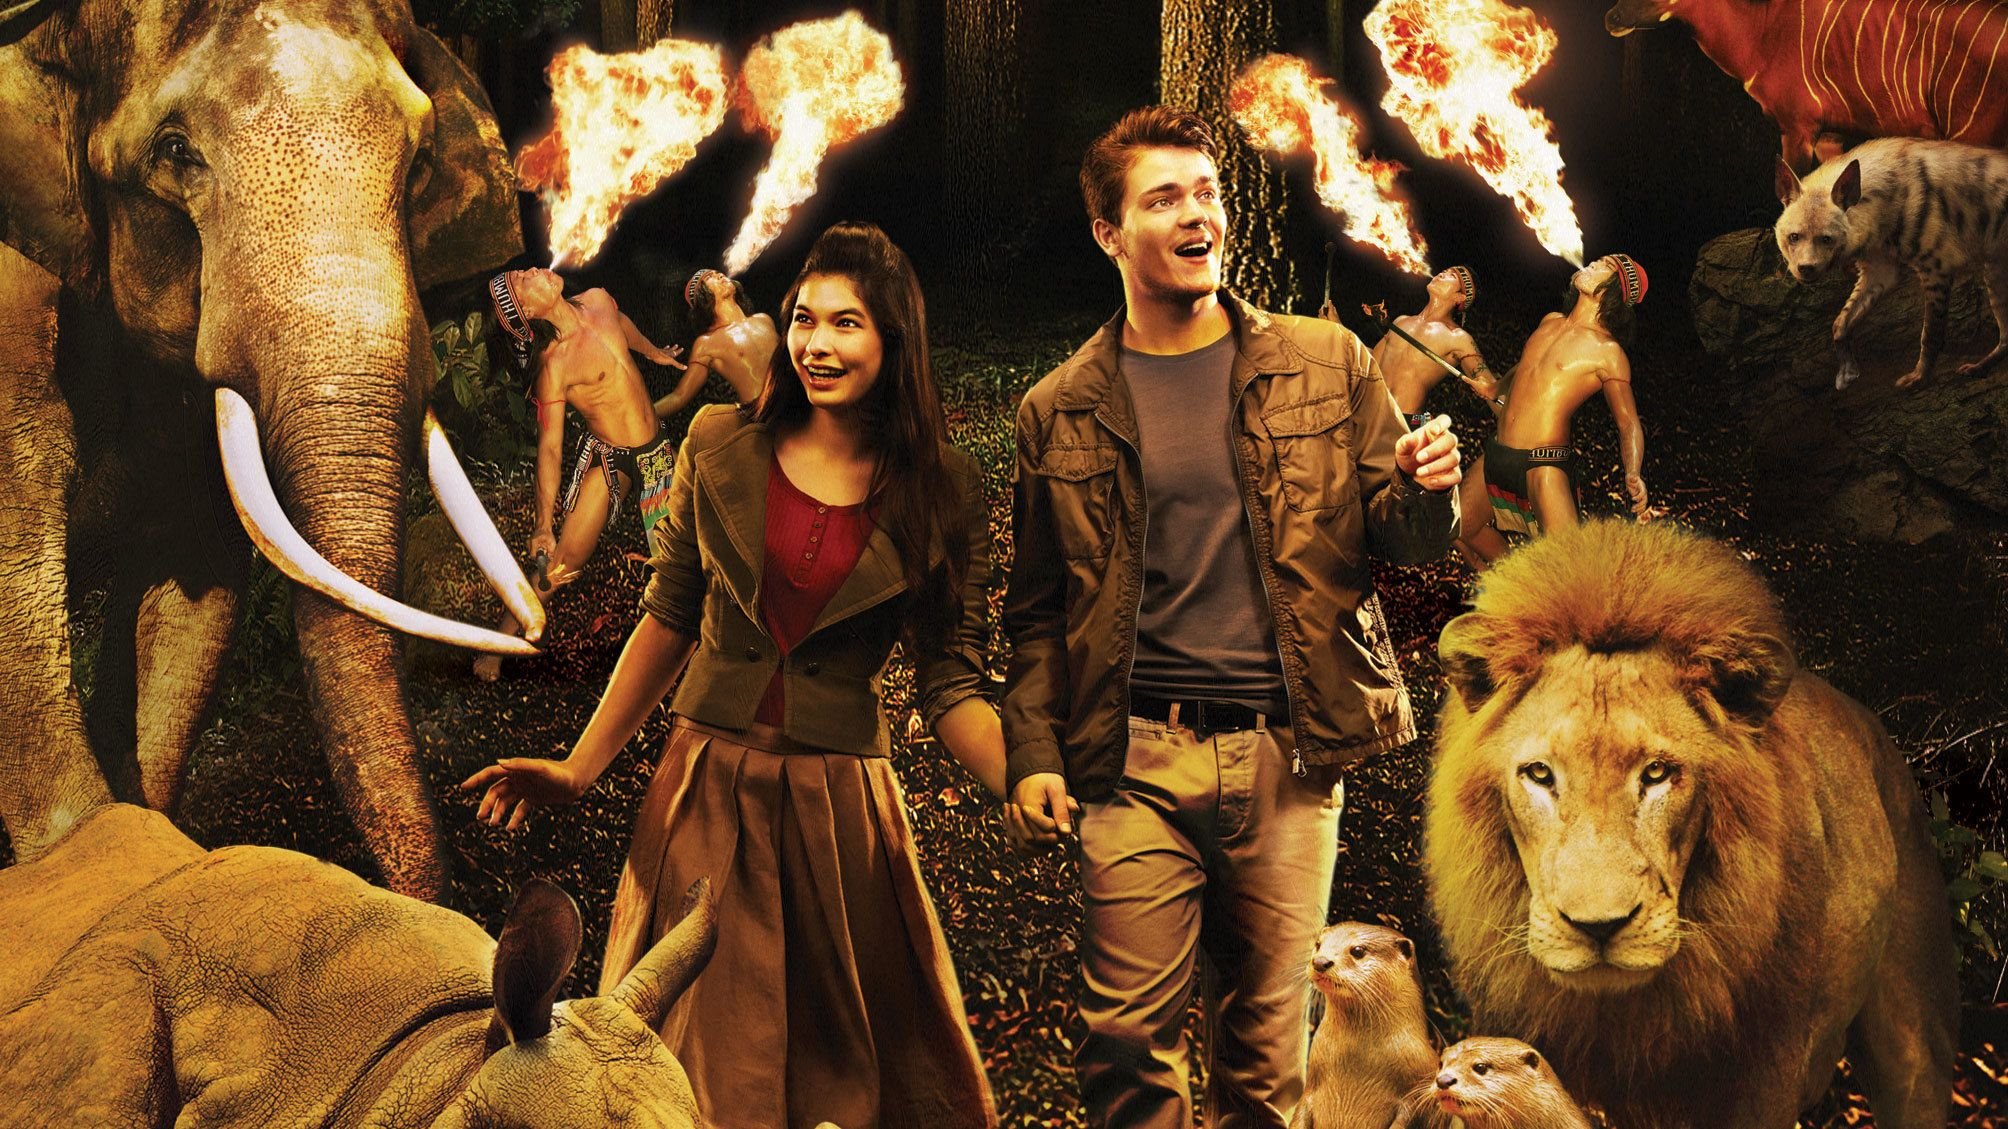 Couple surrounded by animals and men breathing fire on back ground for Night Safari attraction in Singapore